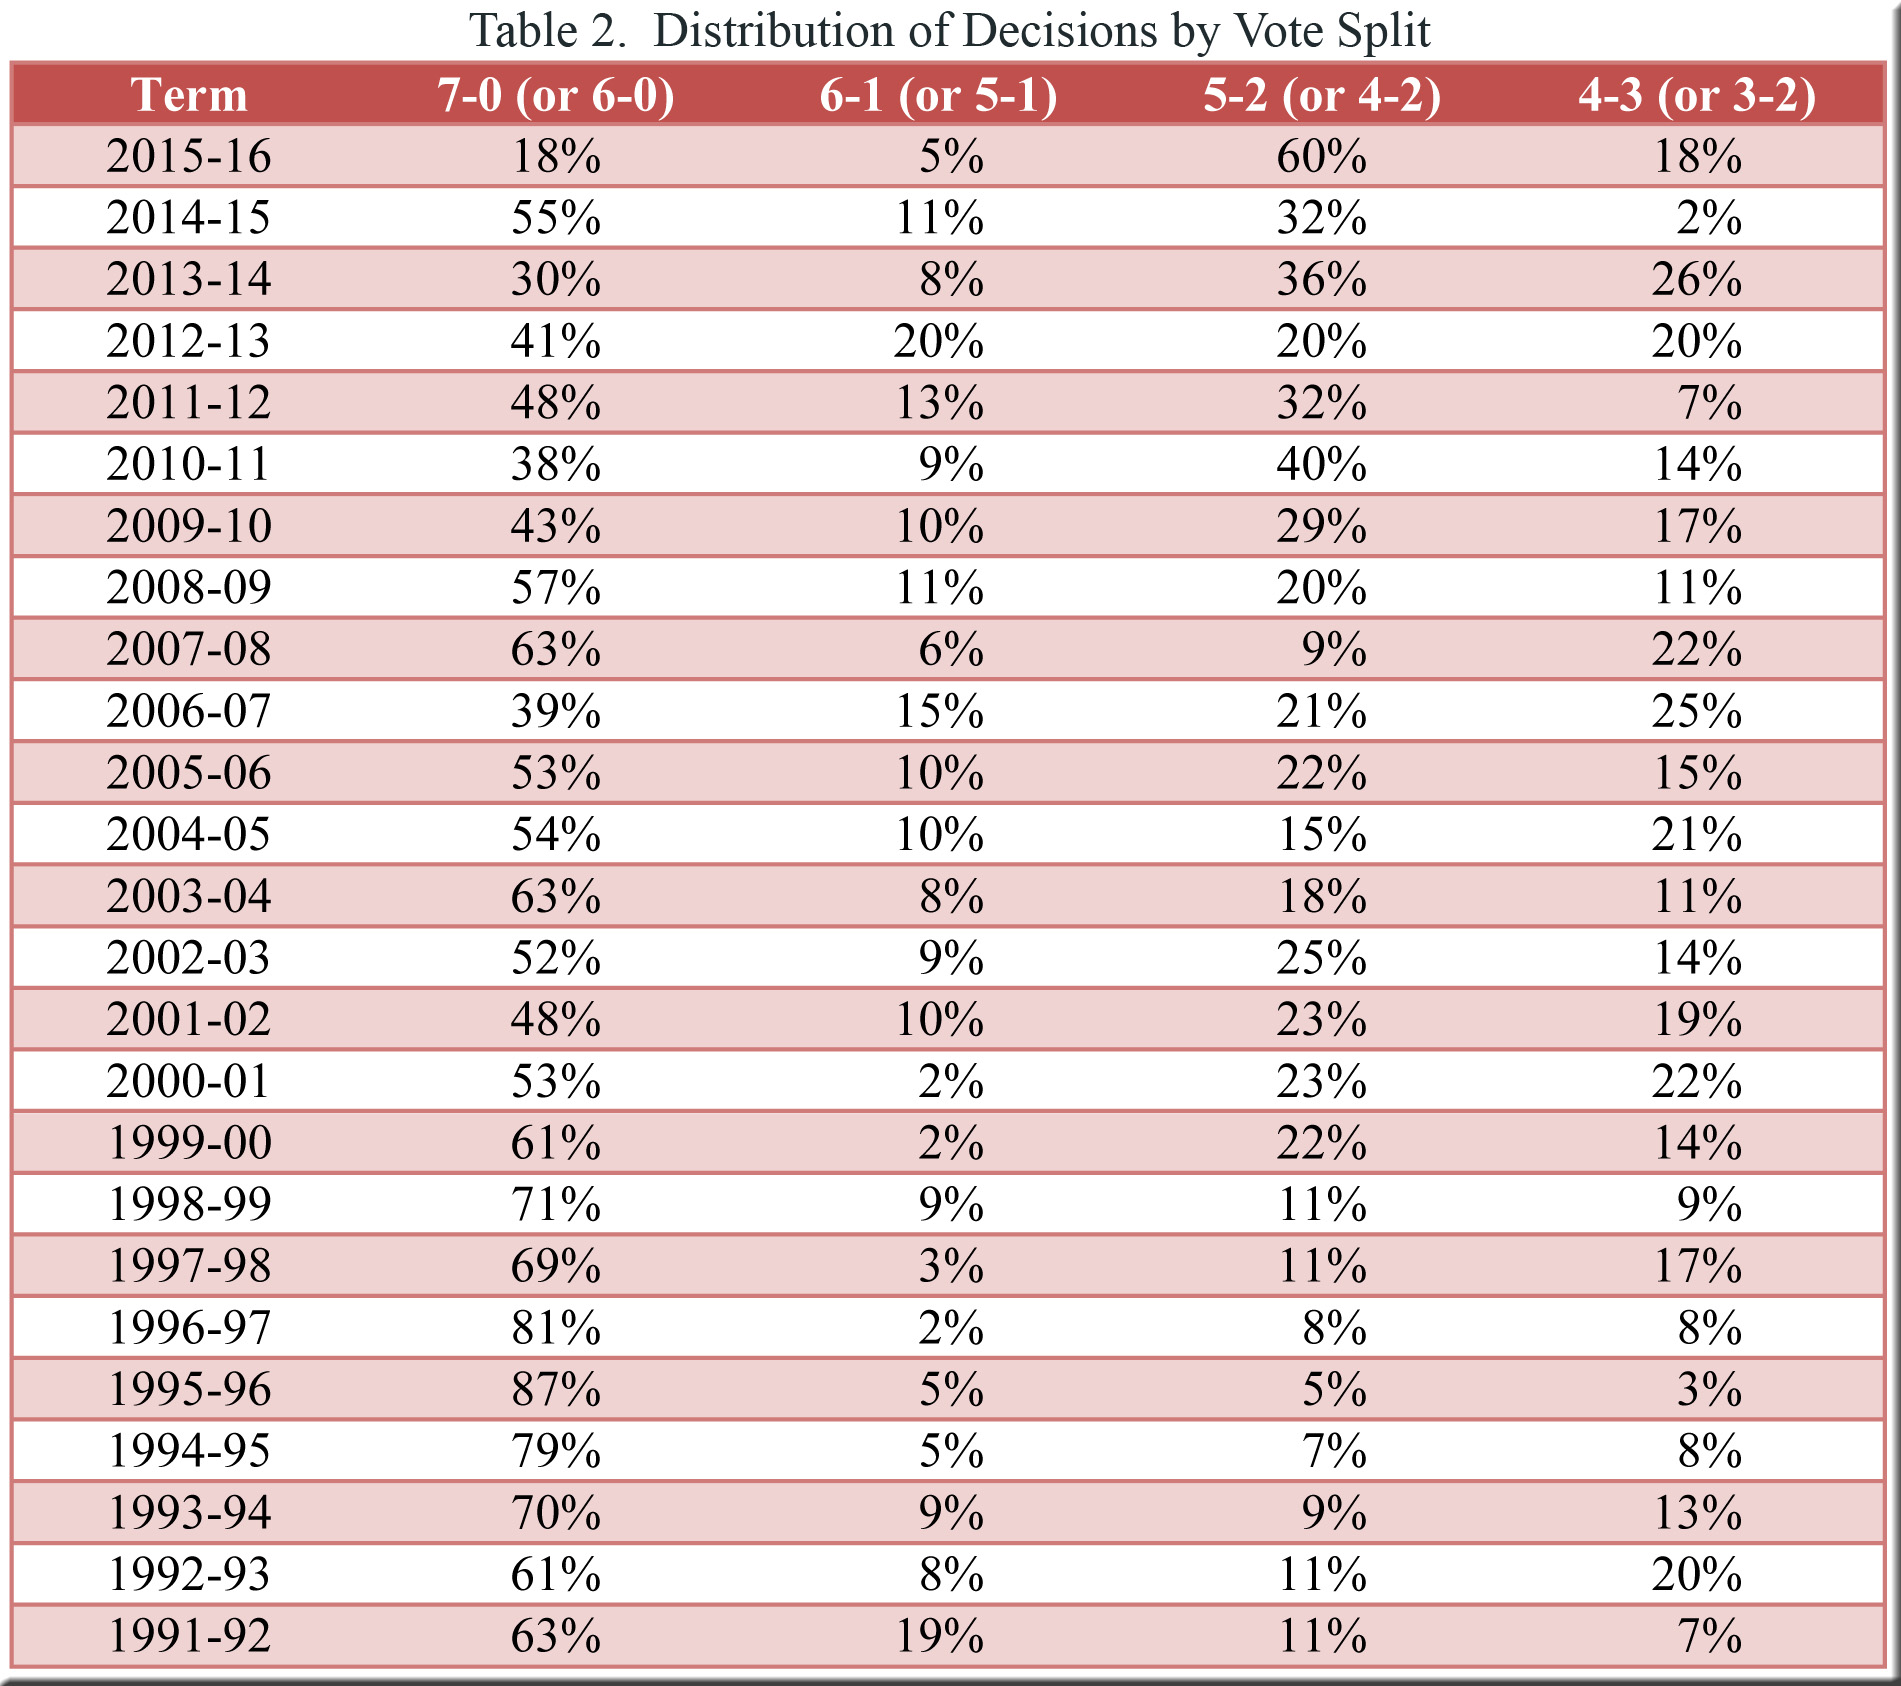 Table 2--Distribution of decisions by vote split--1991-92 thru 2015-16